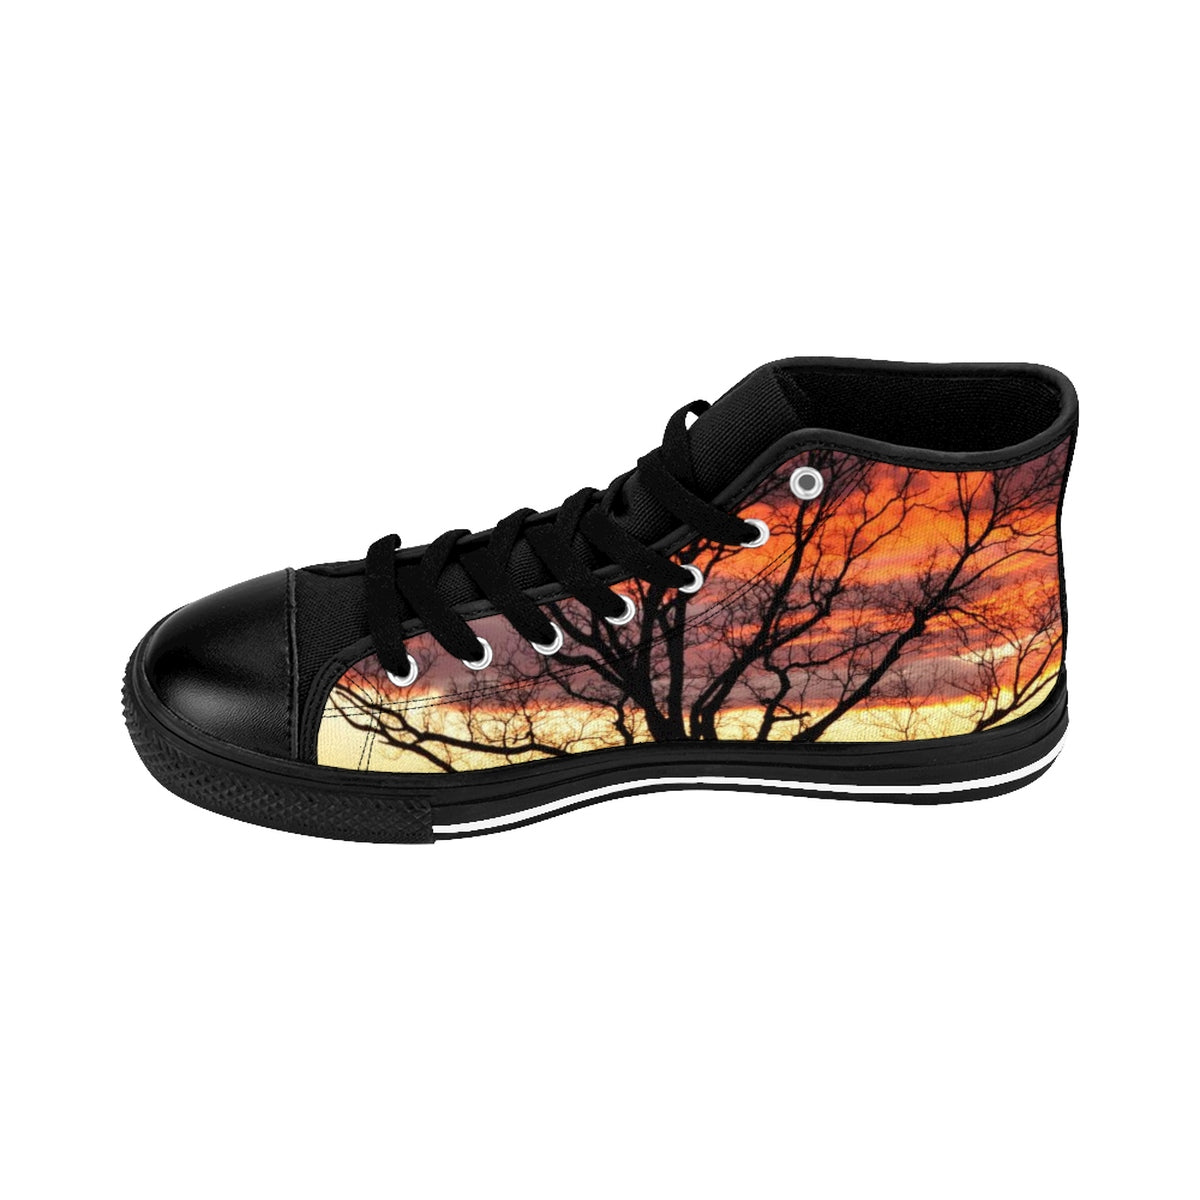 Sunrise Tree Men's High-top Sneakers (order one size larger than needed)